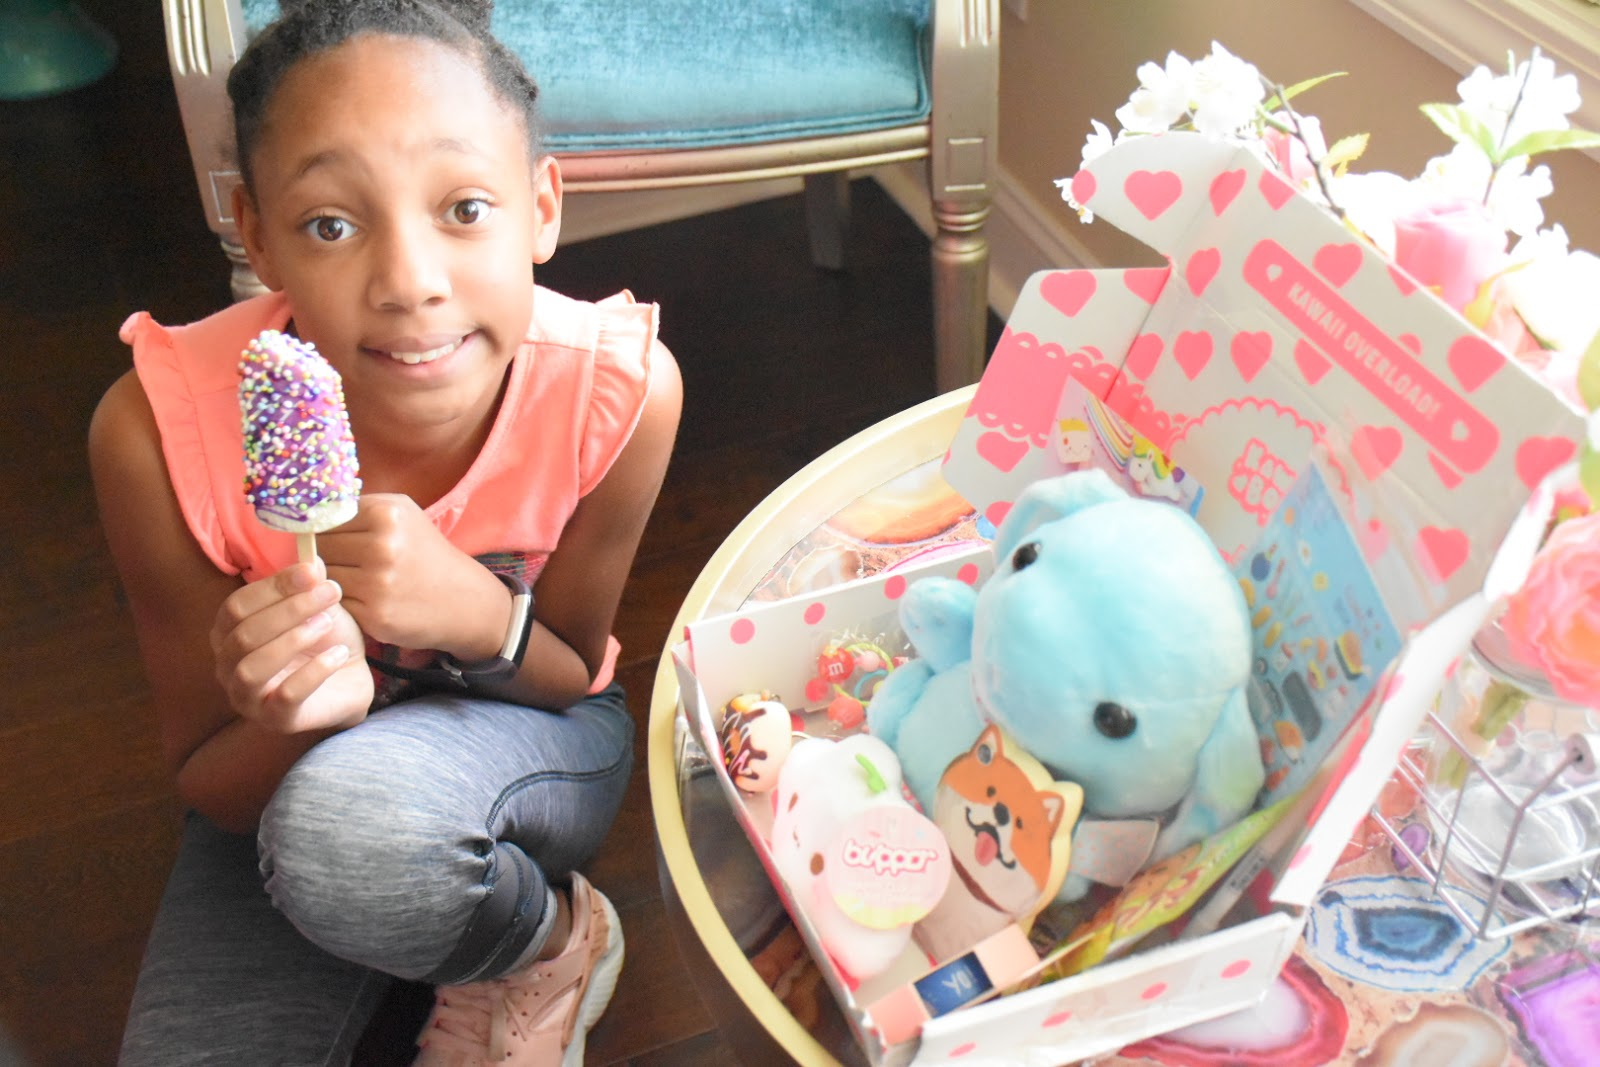 The Cutest Subscription Box Ever! Kawaii Box Review  via  www.productreviewmom.com